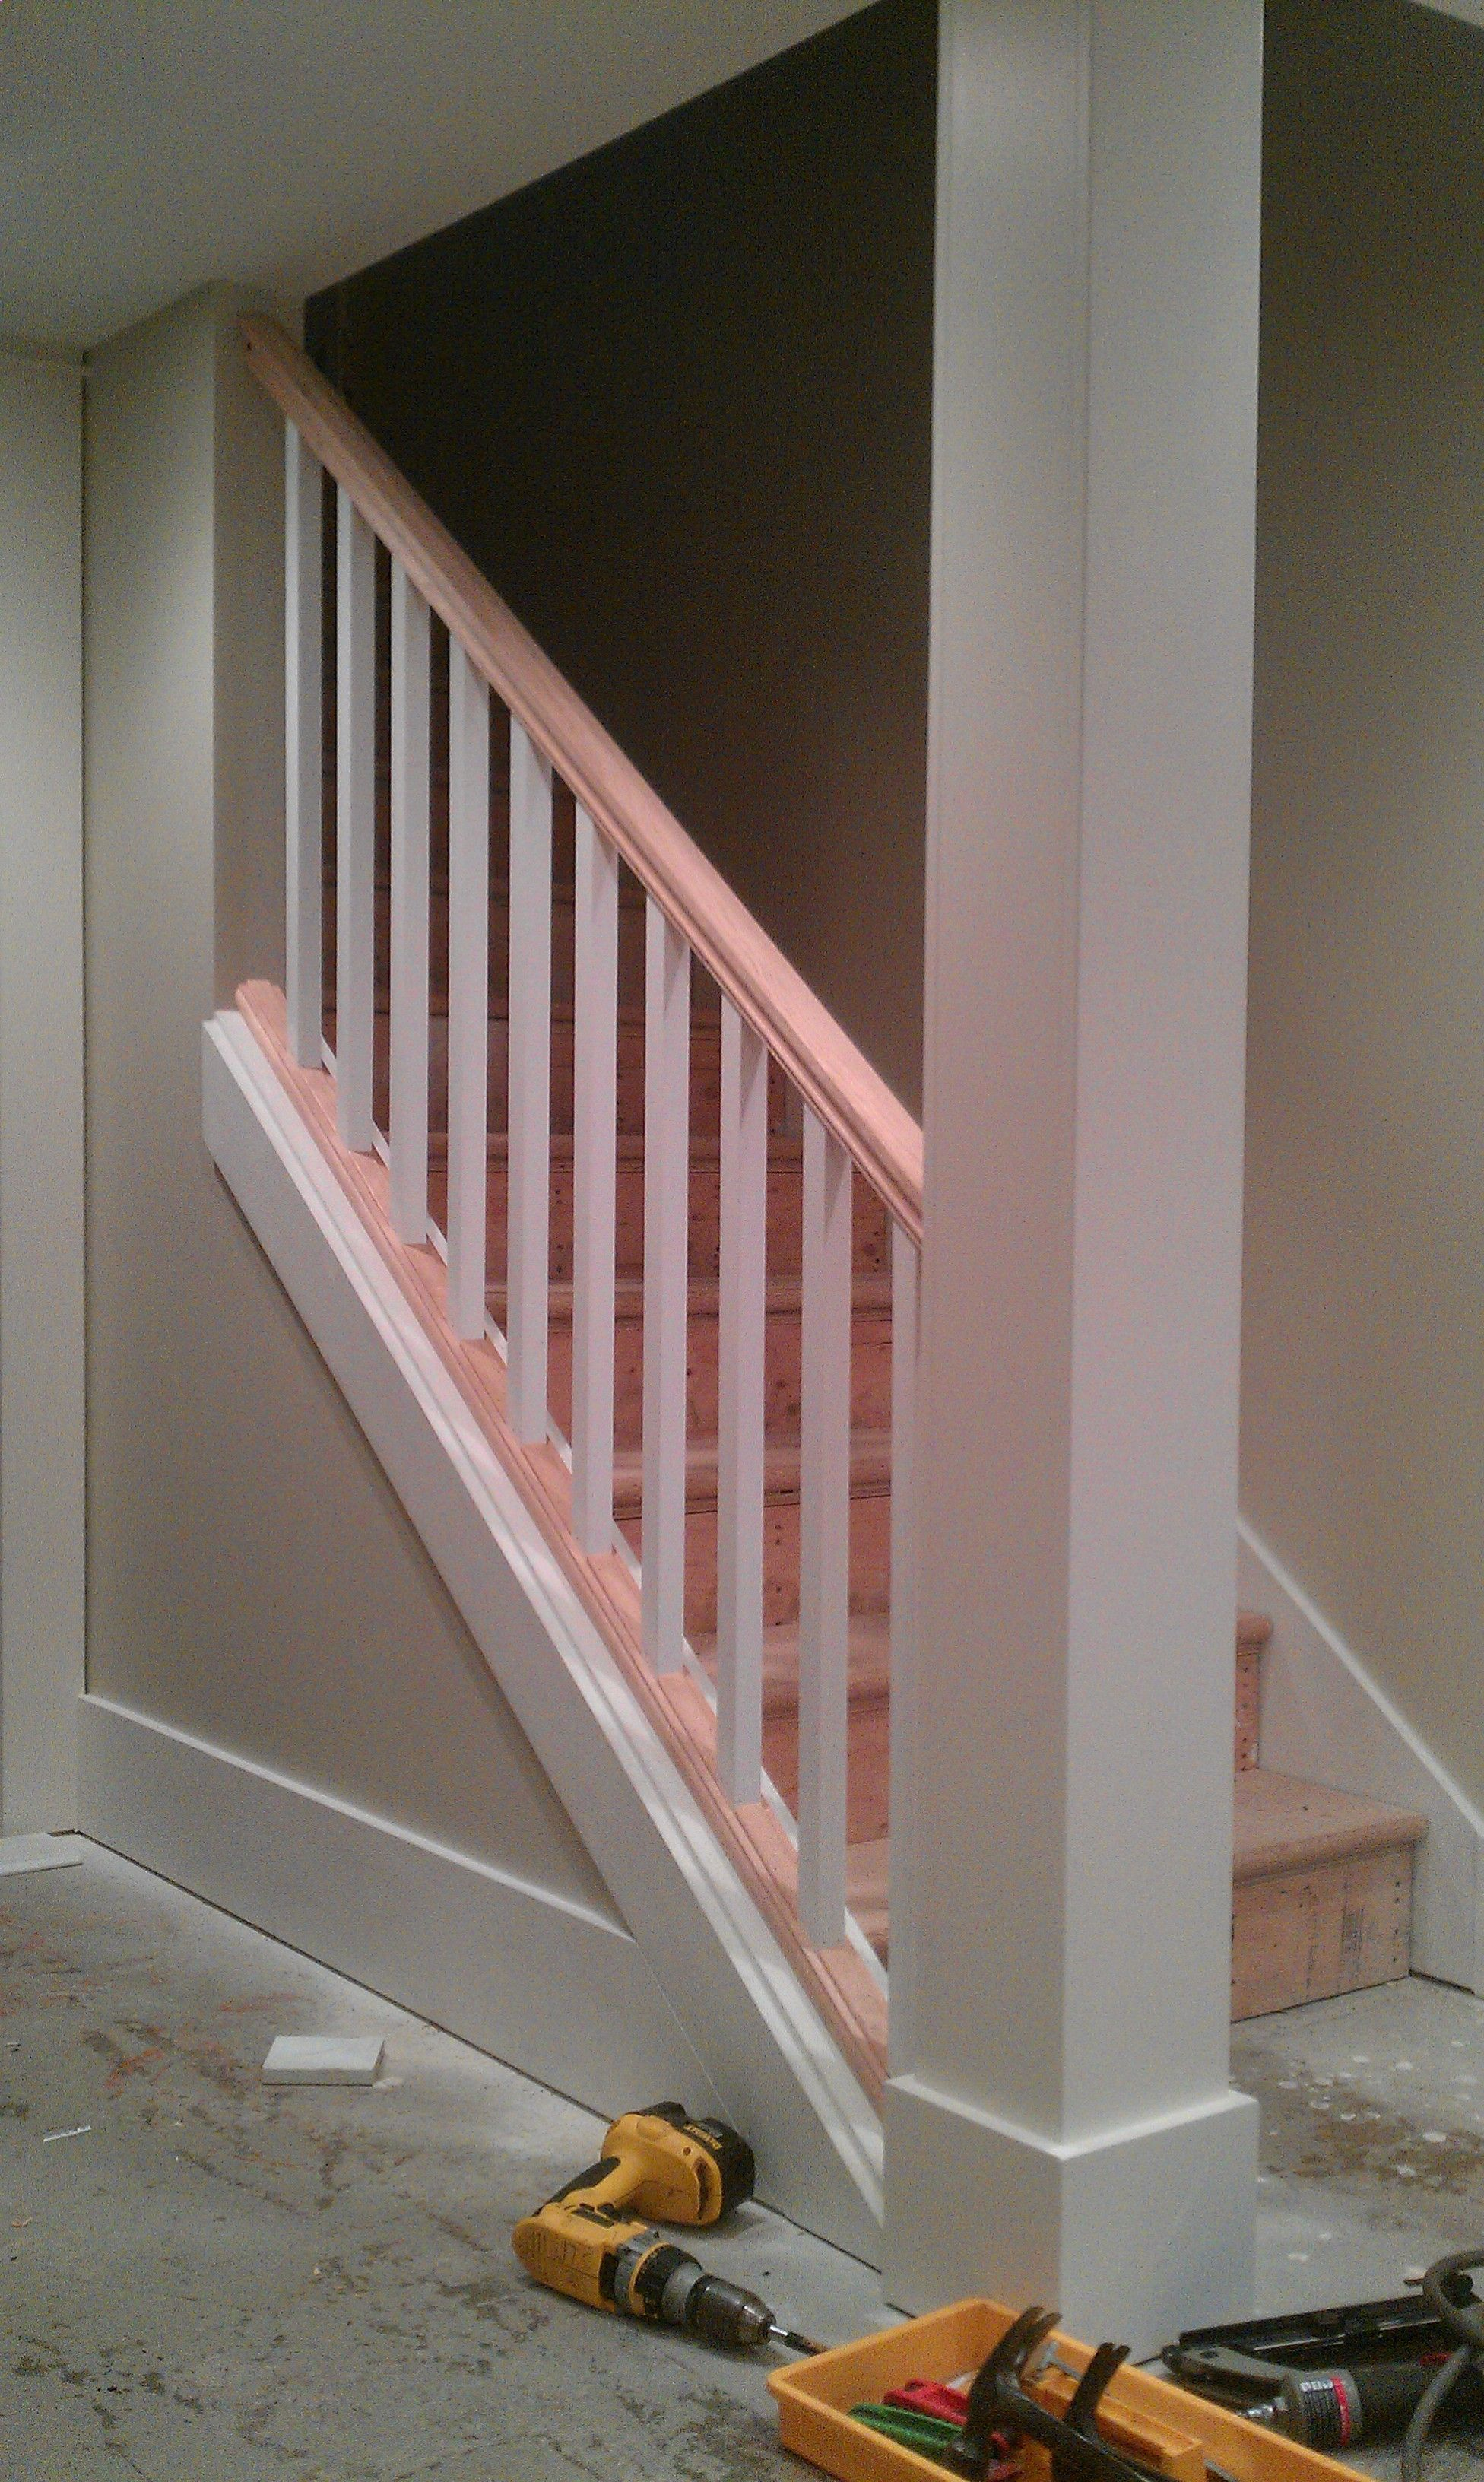 Basement Stair Removing Part Of The Wall And Replacing It With | Cost To Replace Basement Stairs | Stair Case | Stair Tread | Carpet | Hardwood | Unfinished Basement